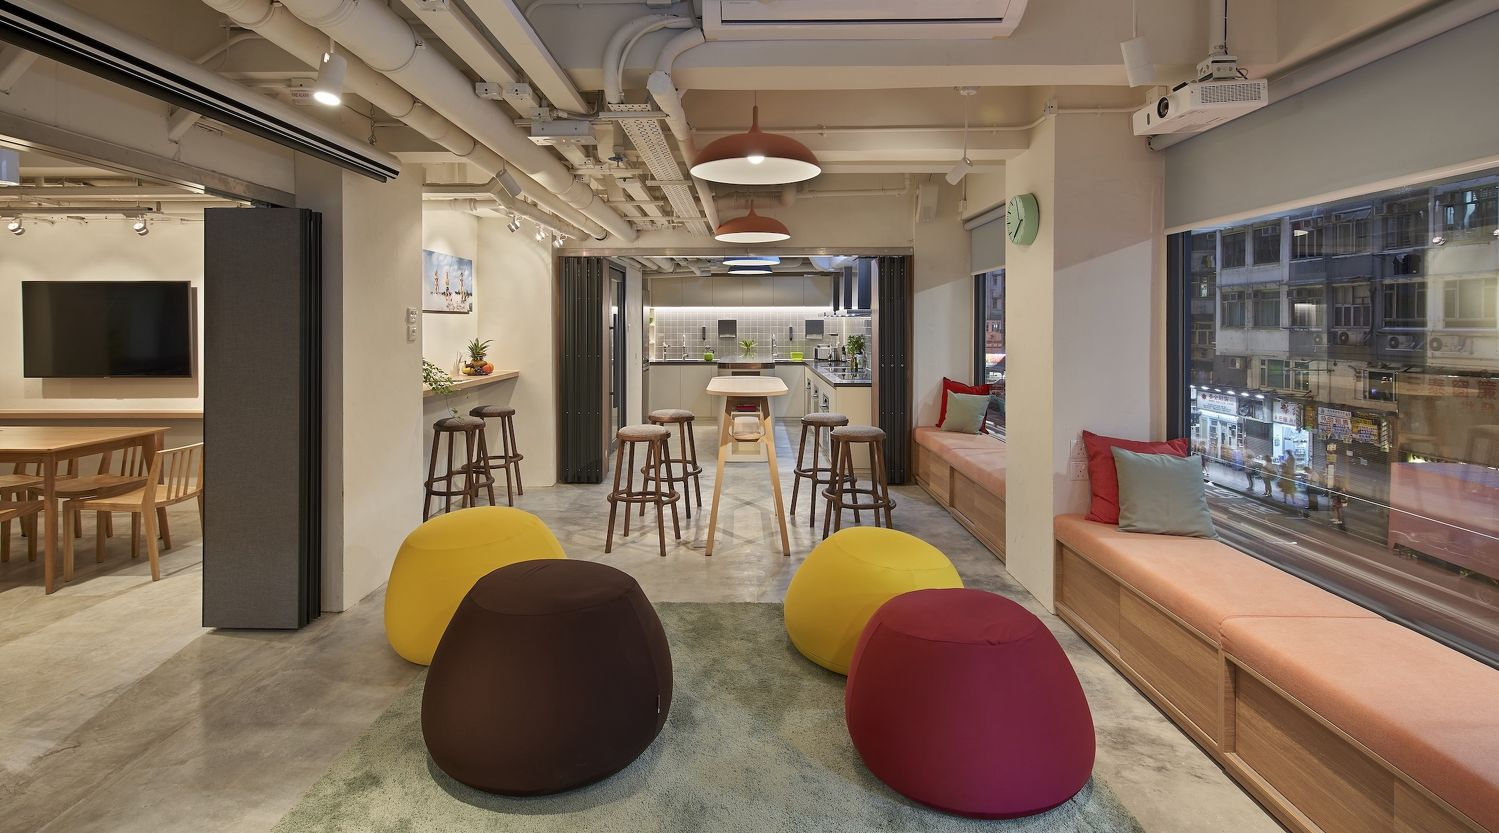 EDGEPROP SINGAPORE - The shared kitchen and dining area at Weave on Boundary, which opened two years ago (Photo: Weave Co-Living)